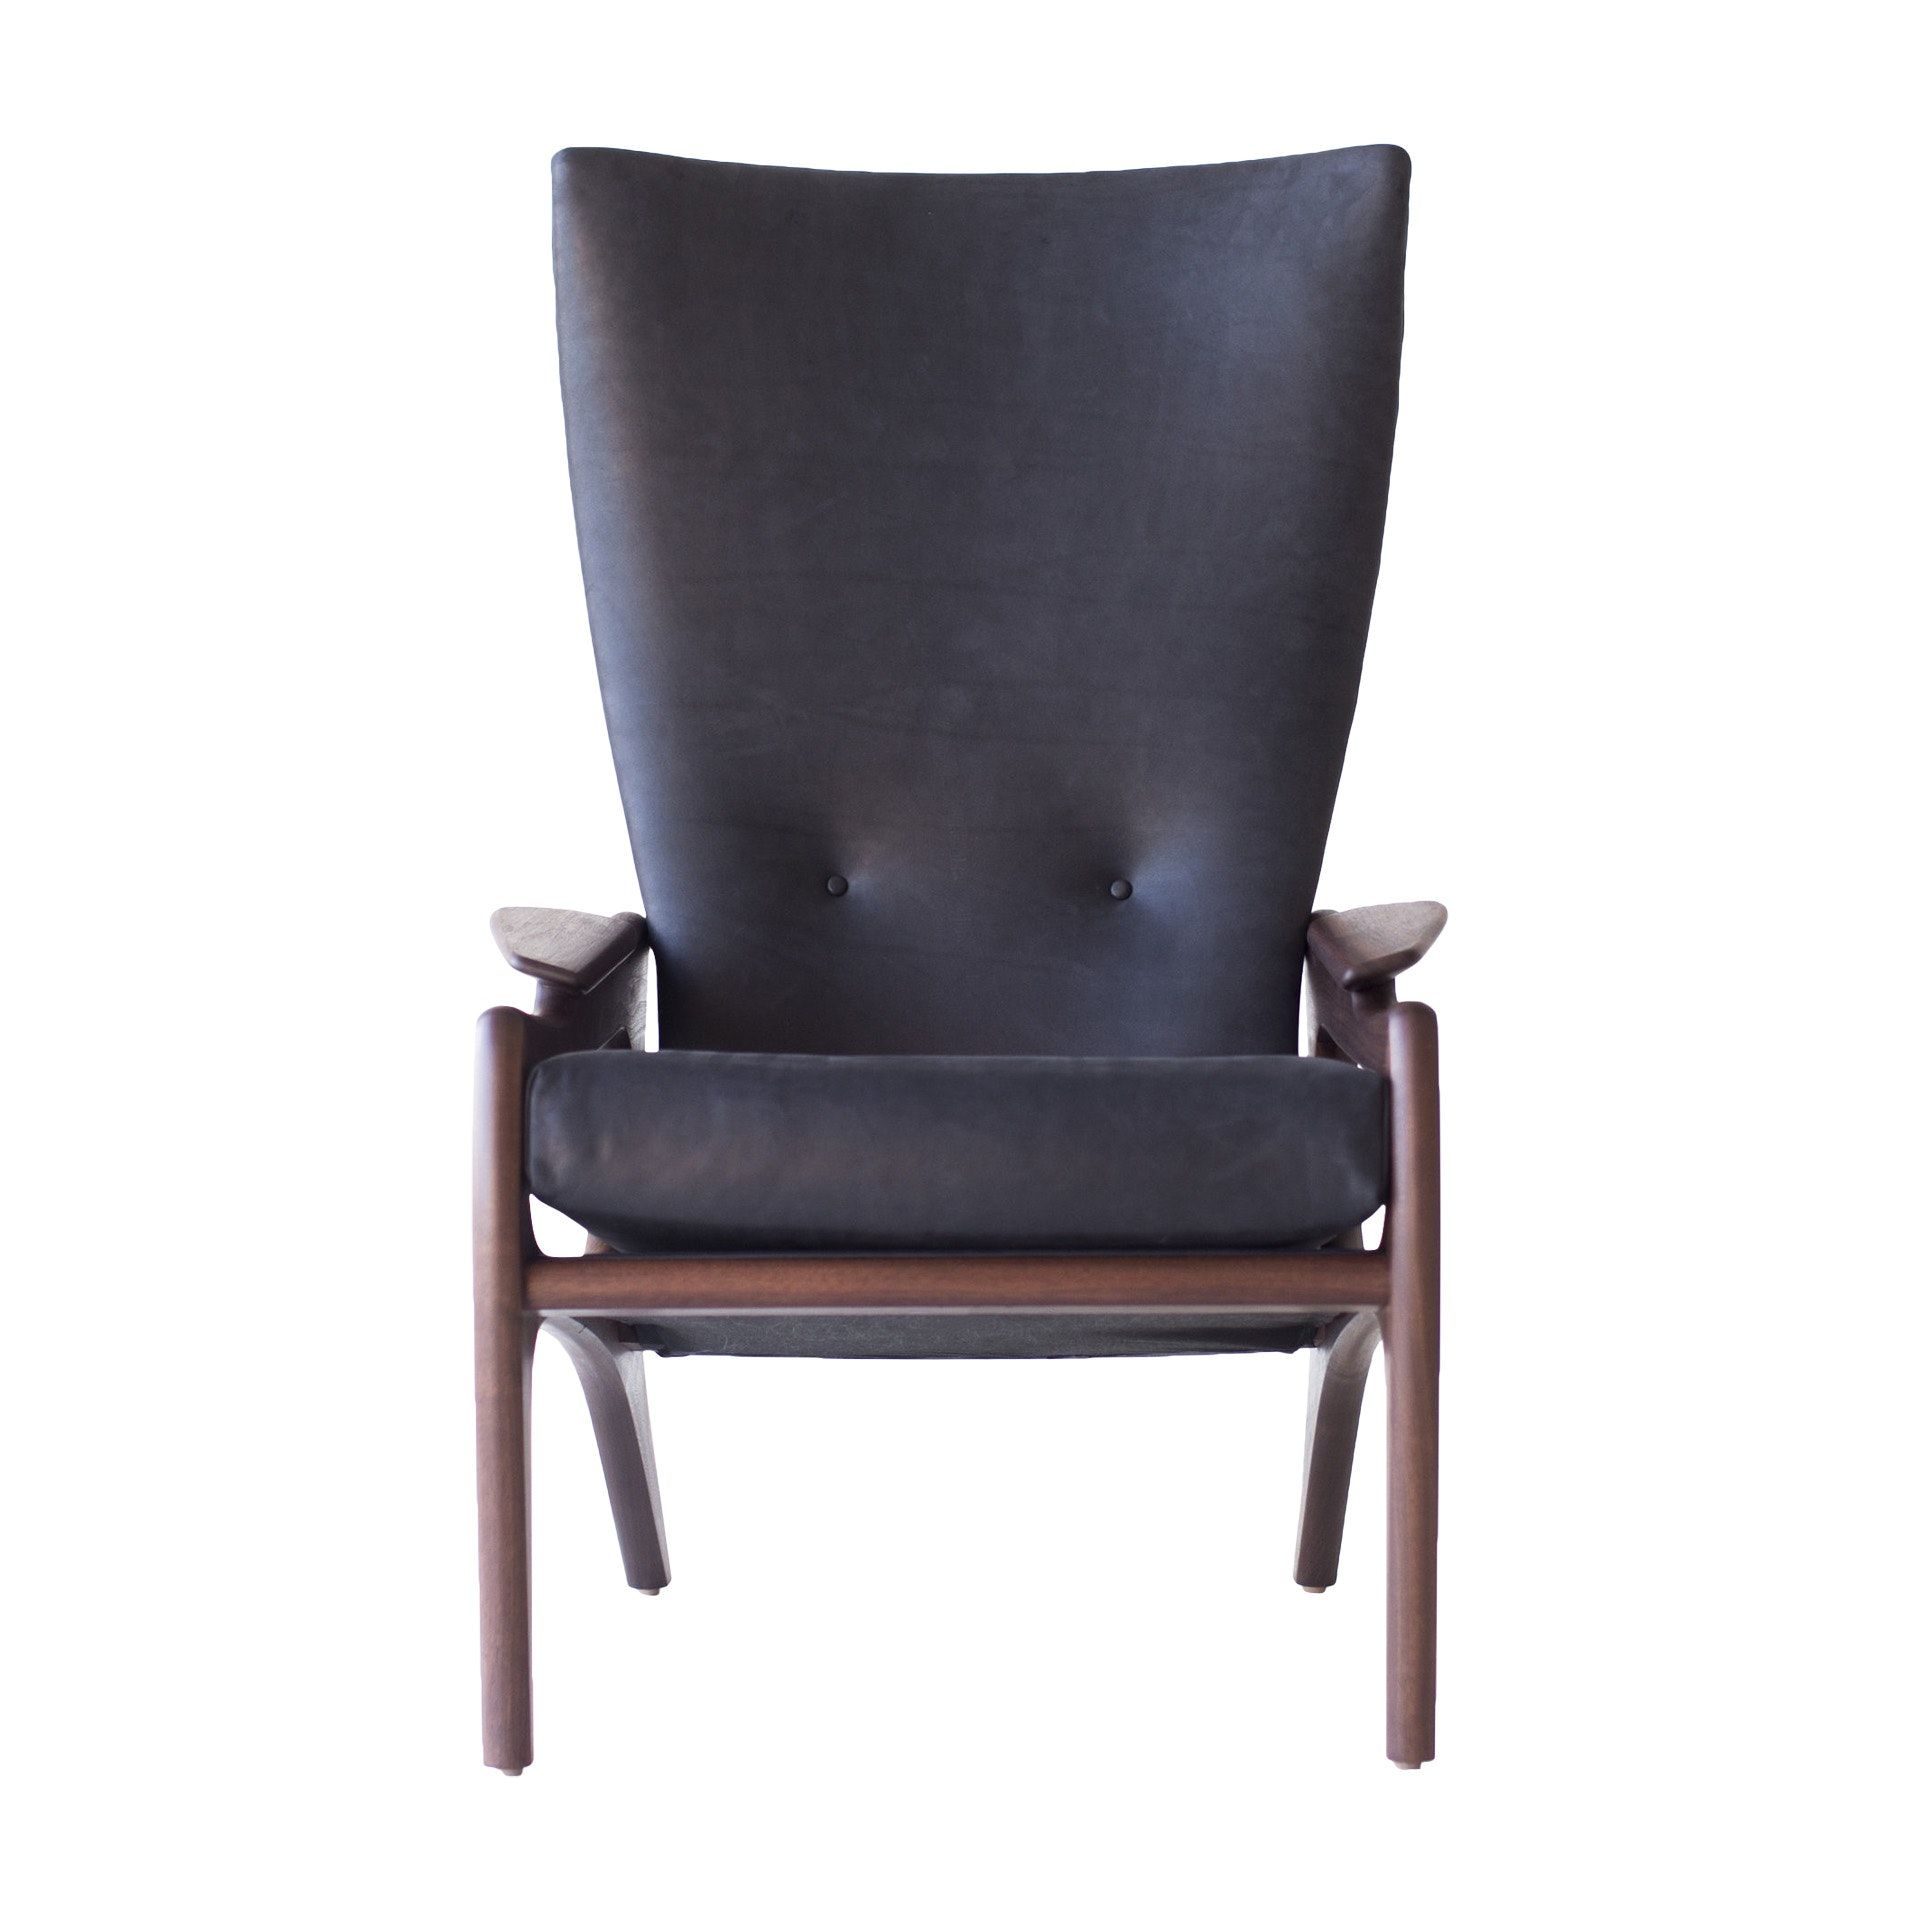 Buy modern high back chairs 1604 craft associates by craft associates furniture made to order designer furniture from dering halls collection of